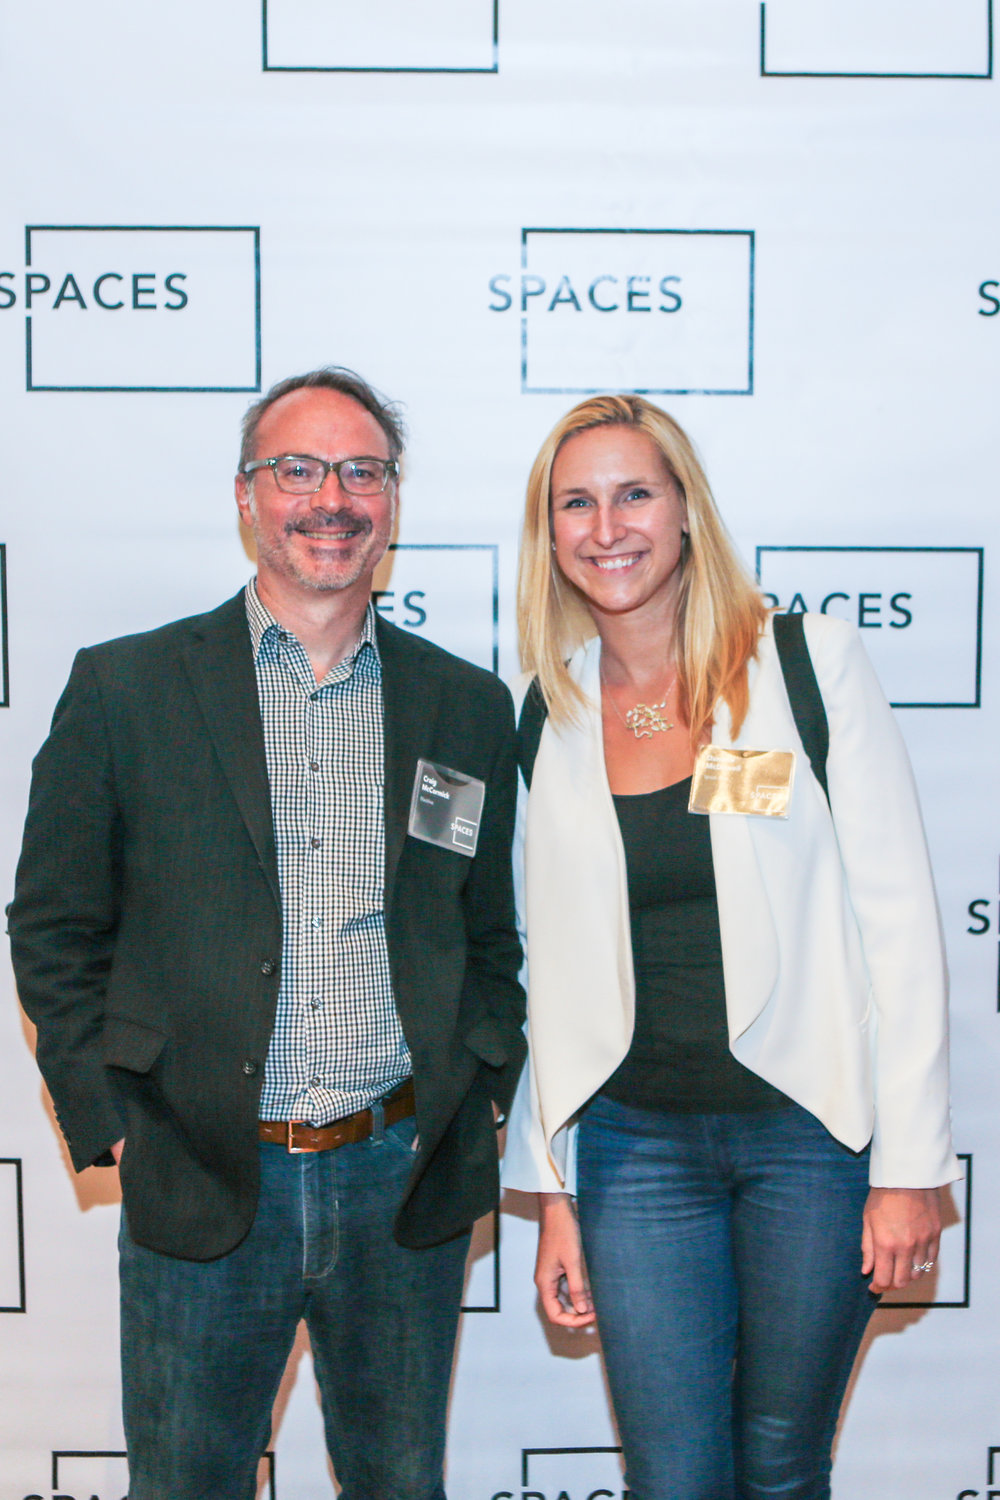 Spaces Event-1032.jpg